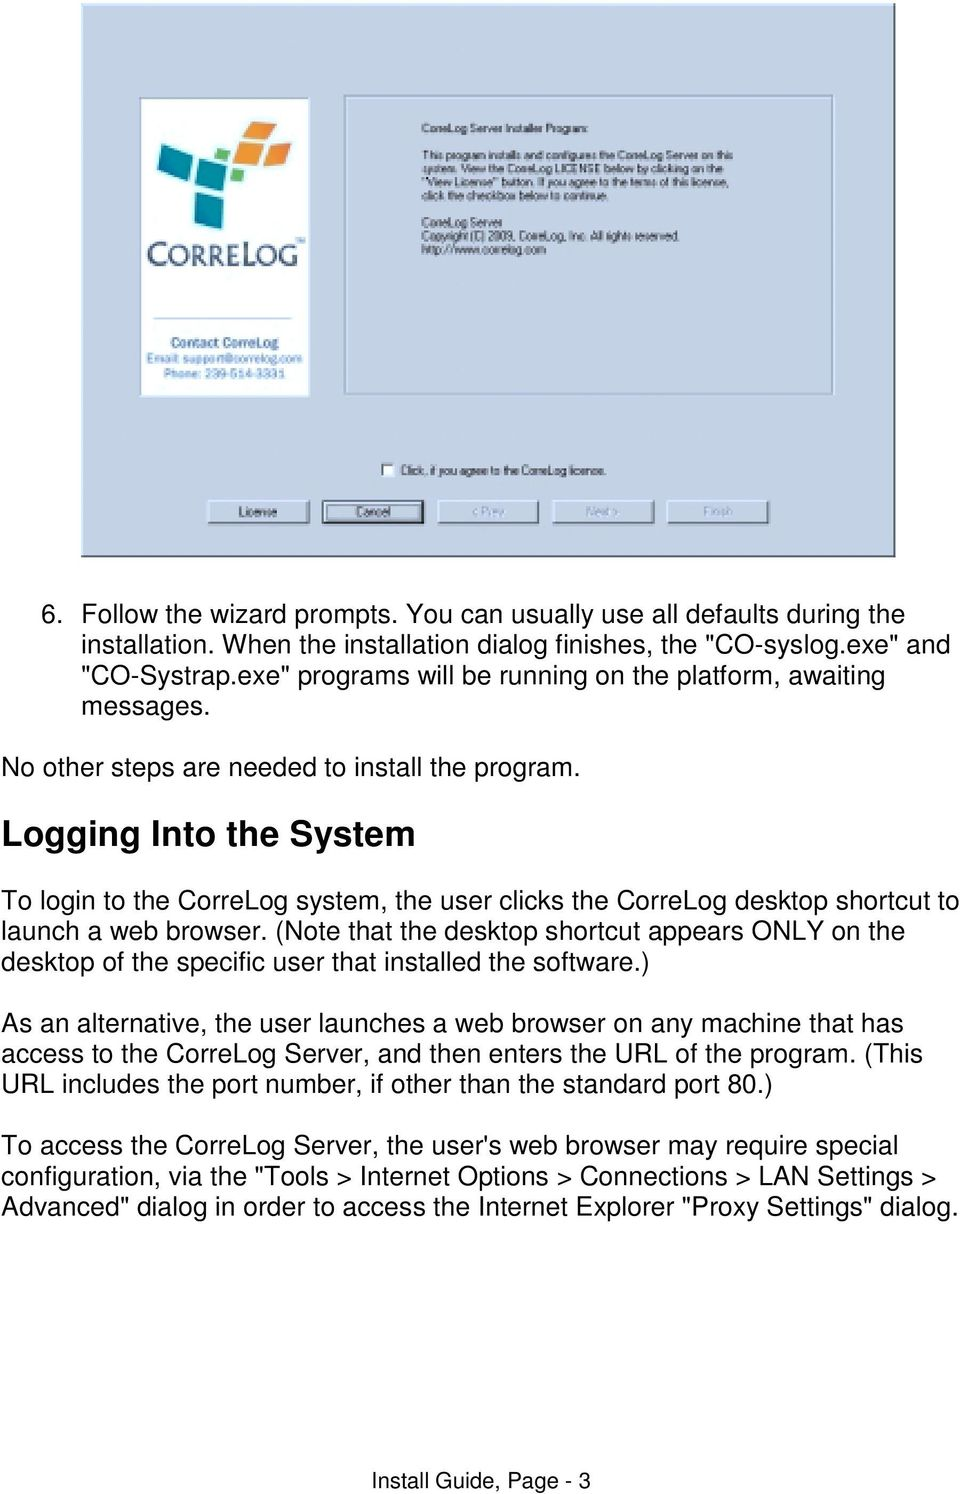 Logging Into the System To login to the CorreLog system, the user clicks the CorreLog desktop shortcut to launch a web browser.